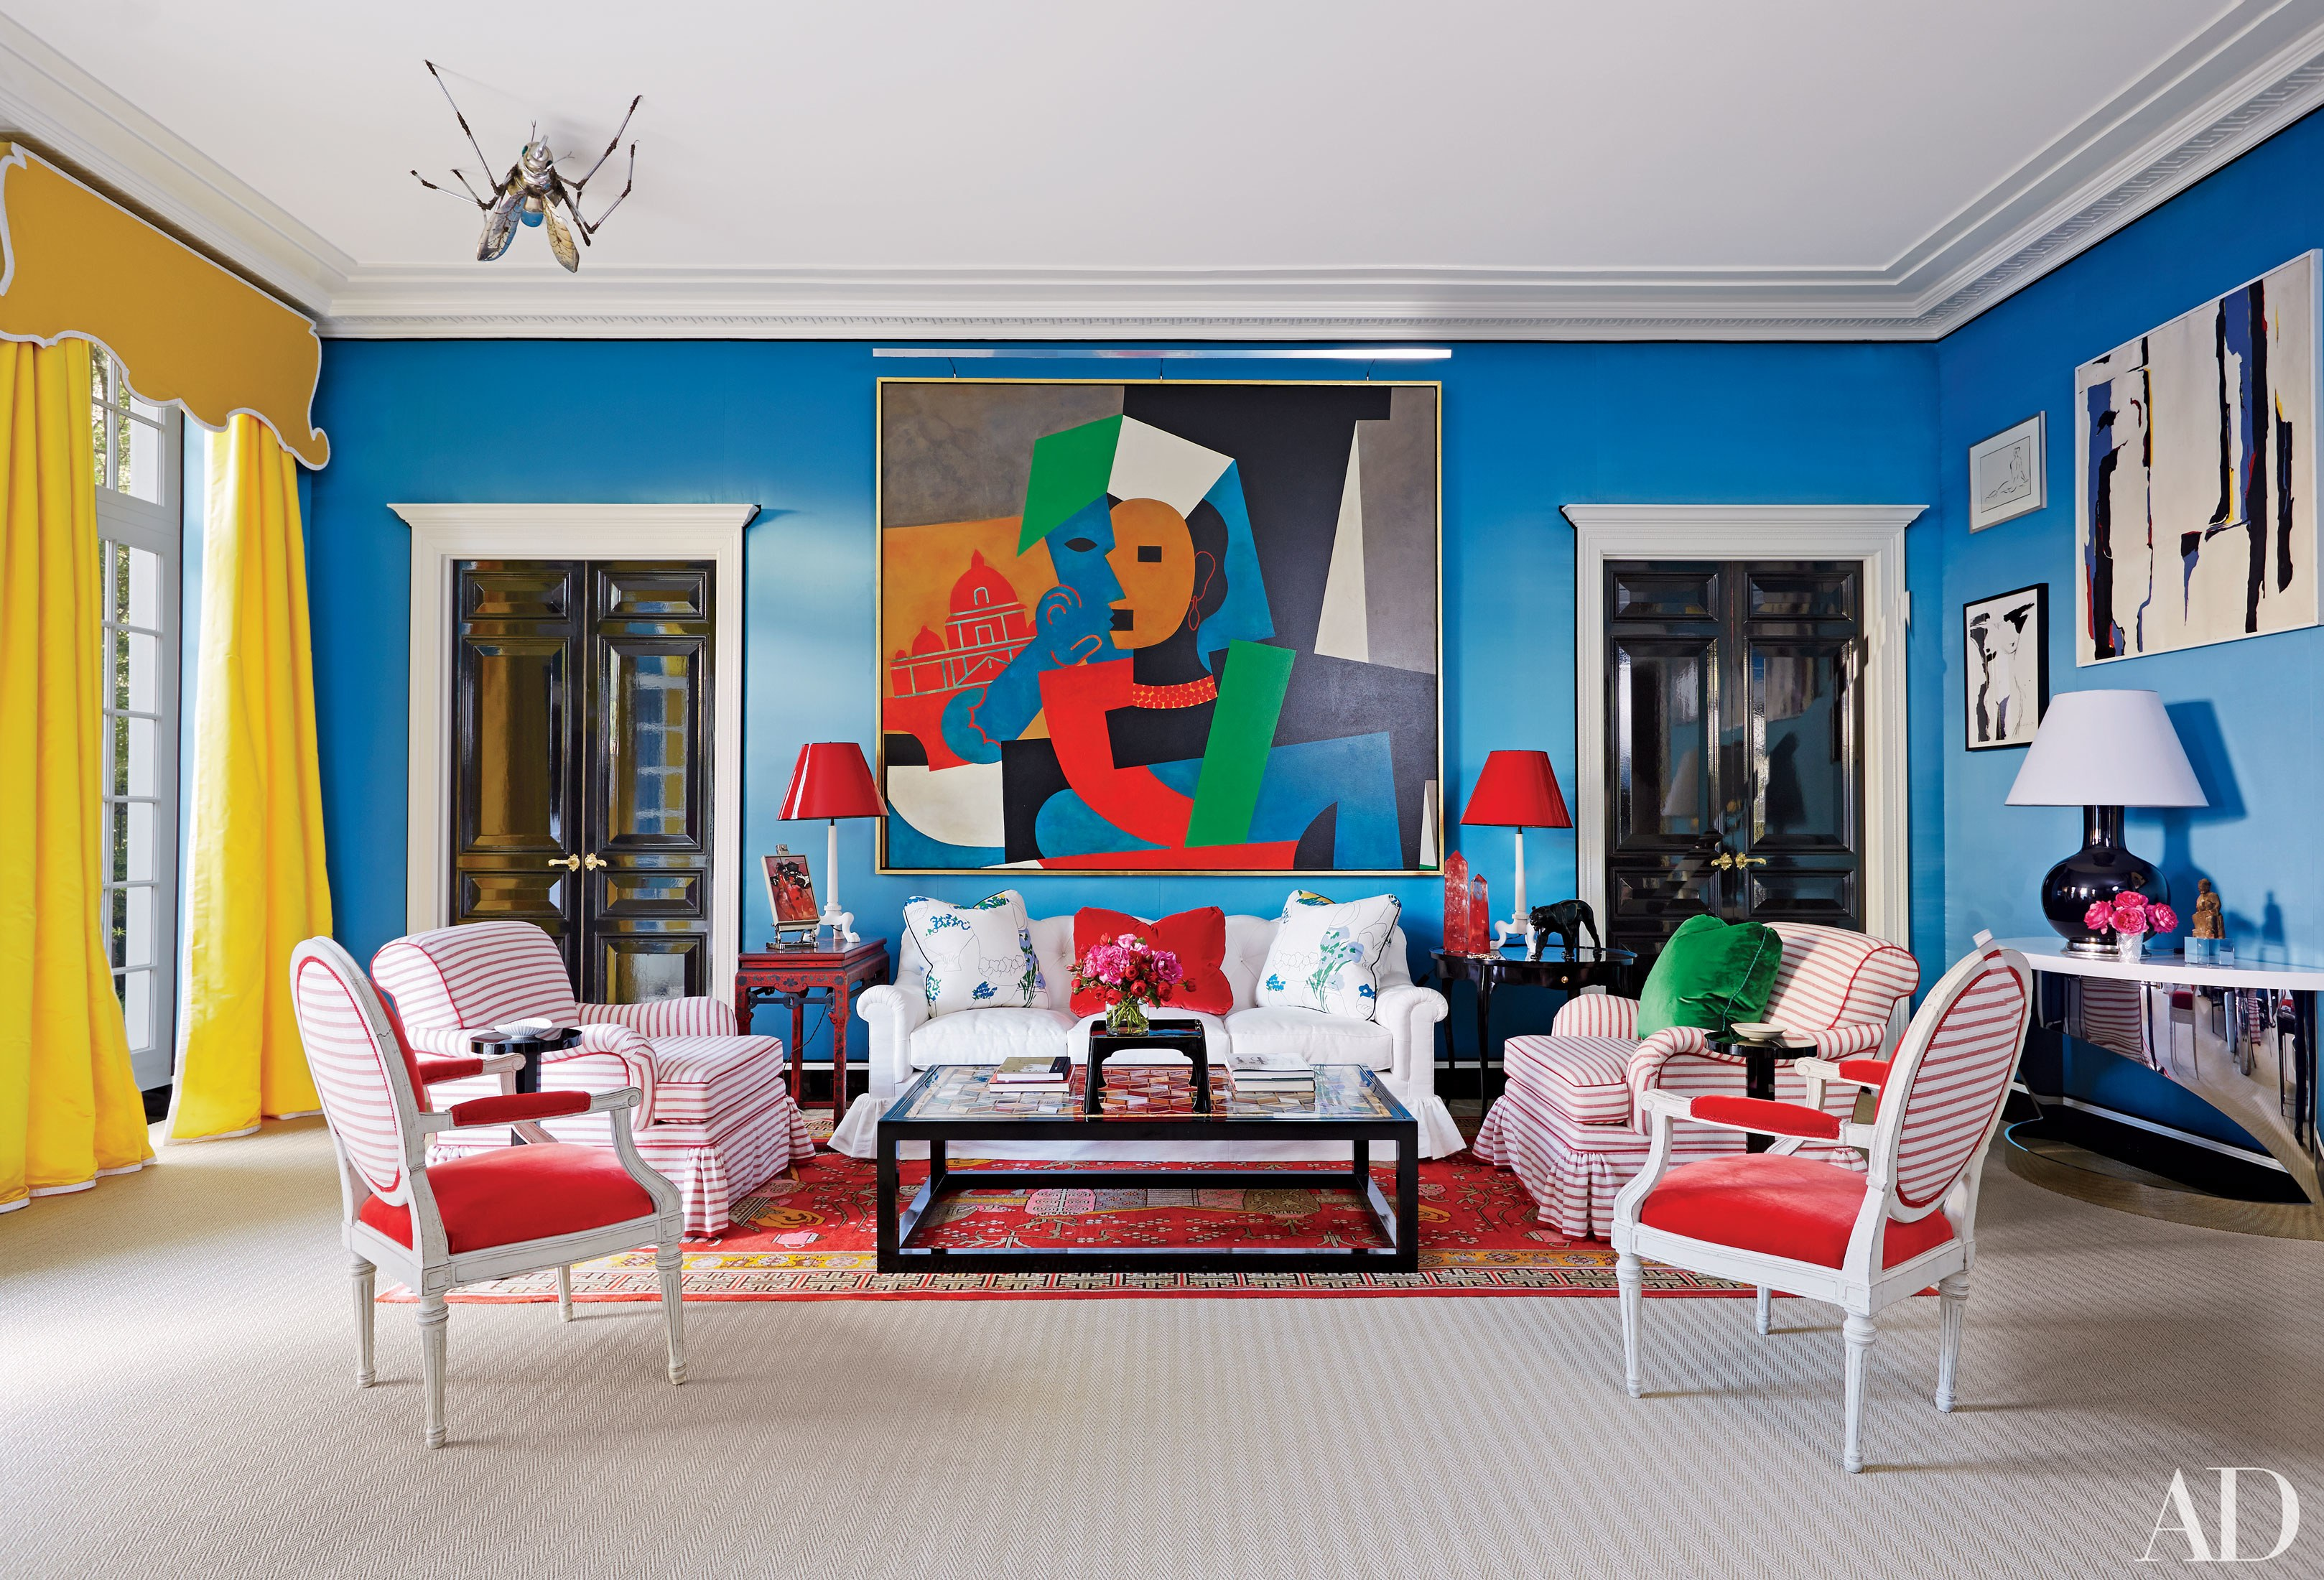 25 Bright and Colorful Room Ideas | The Huffington Post